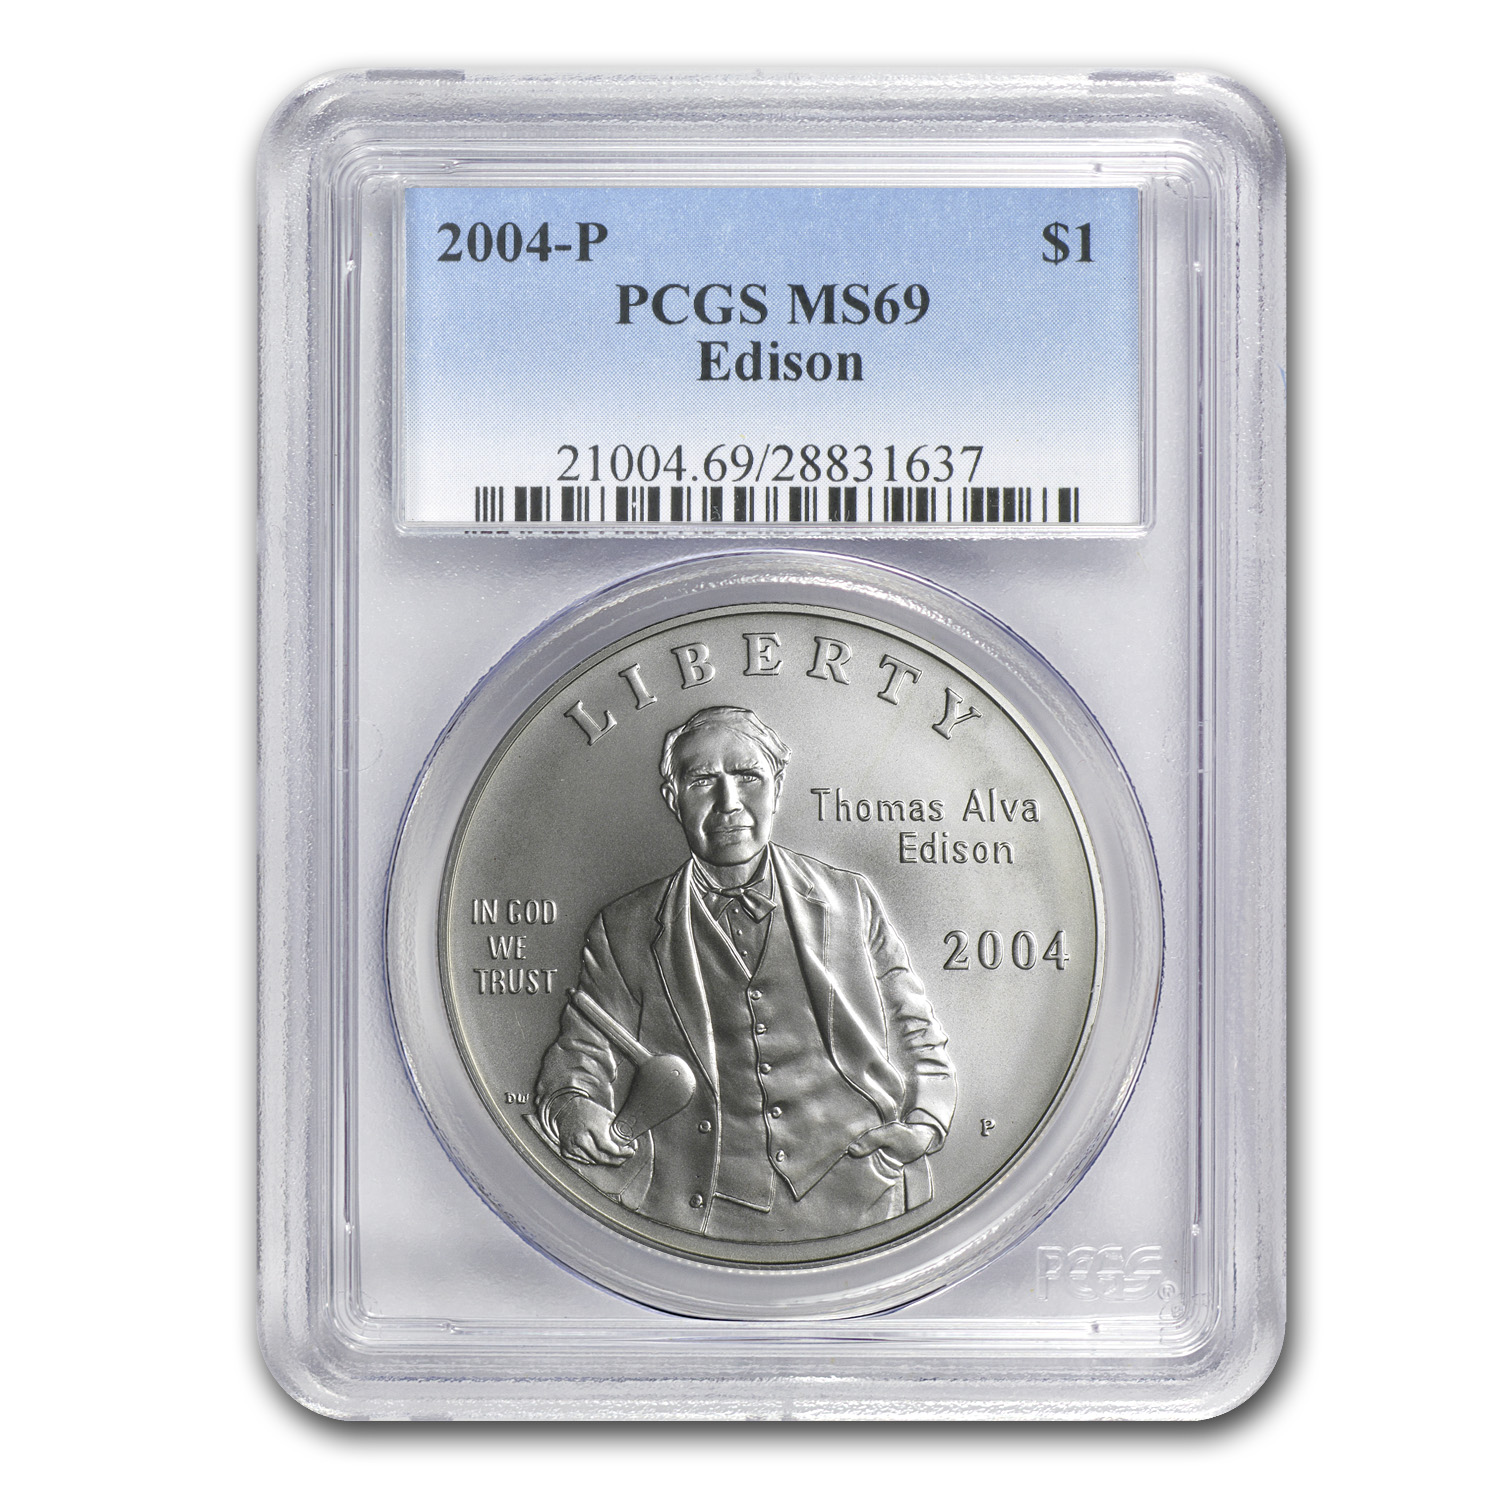 2004-P Thomas Edison $1 Silver Commemorative MS-69 PCGS